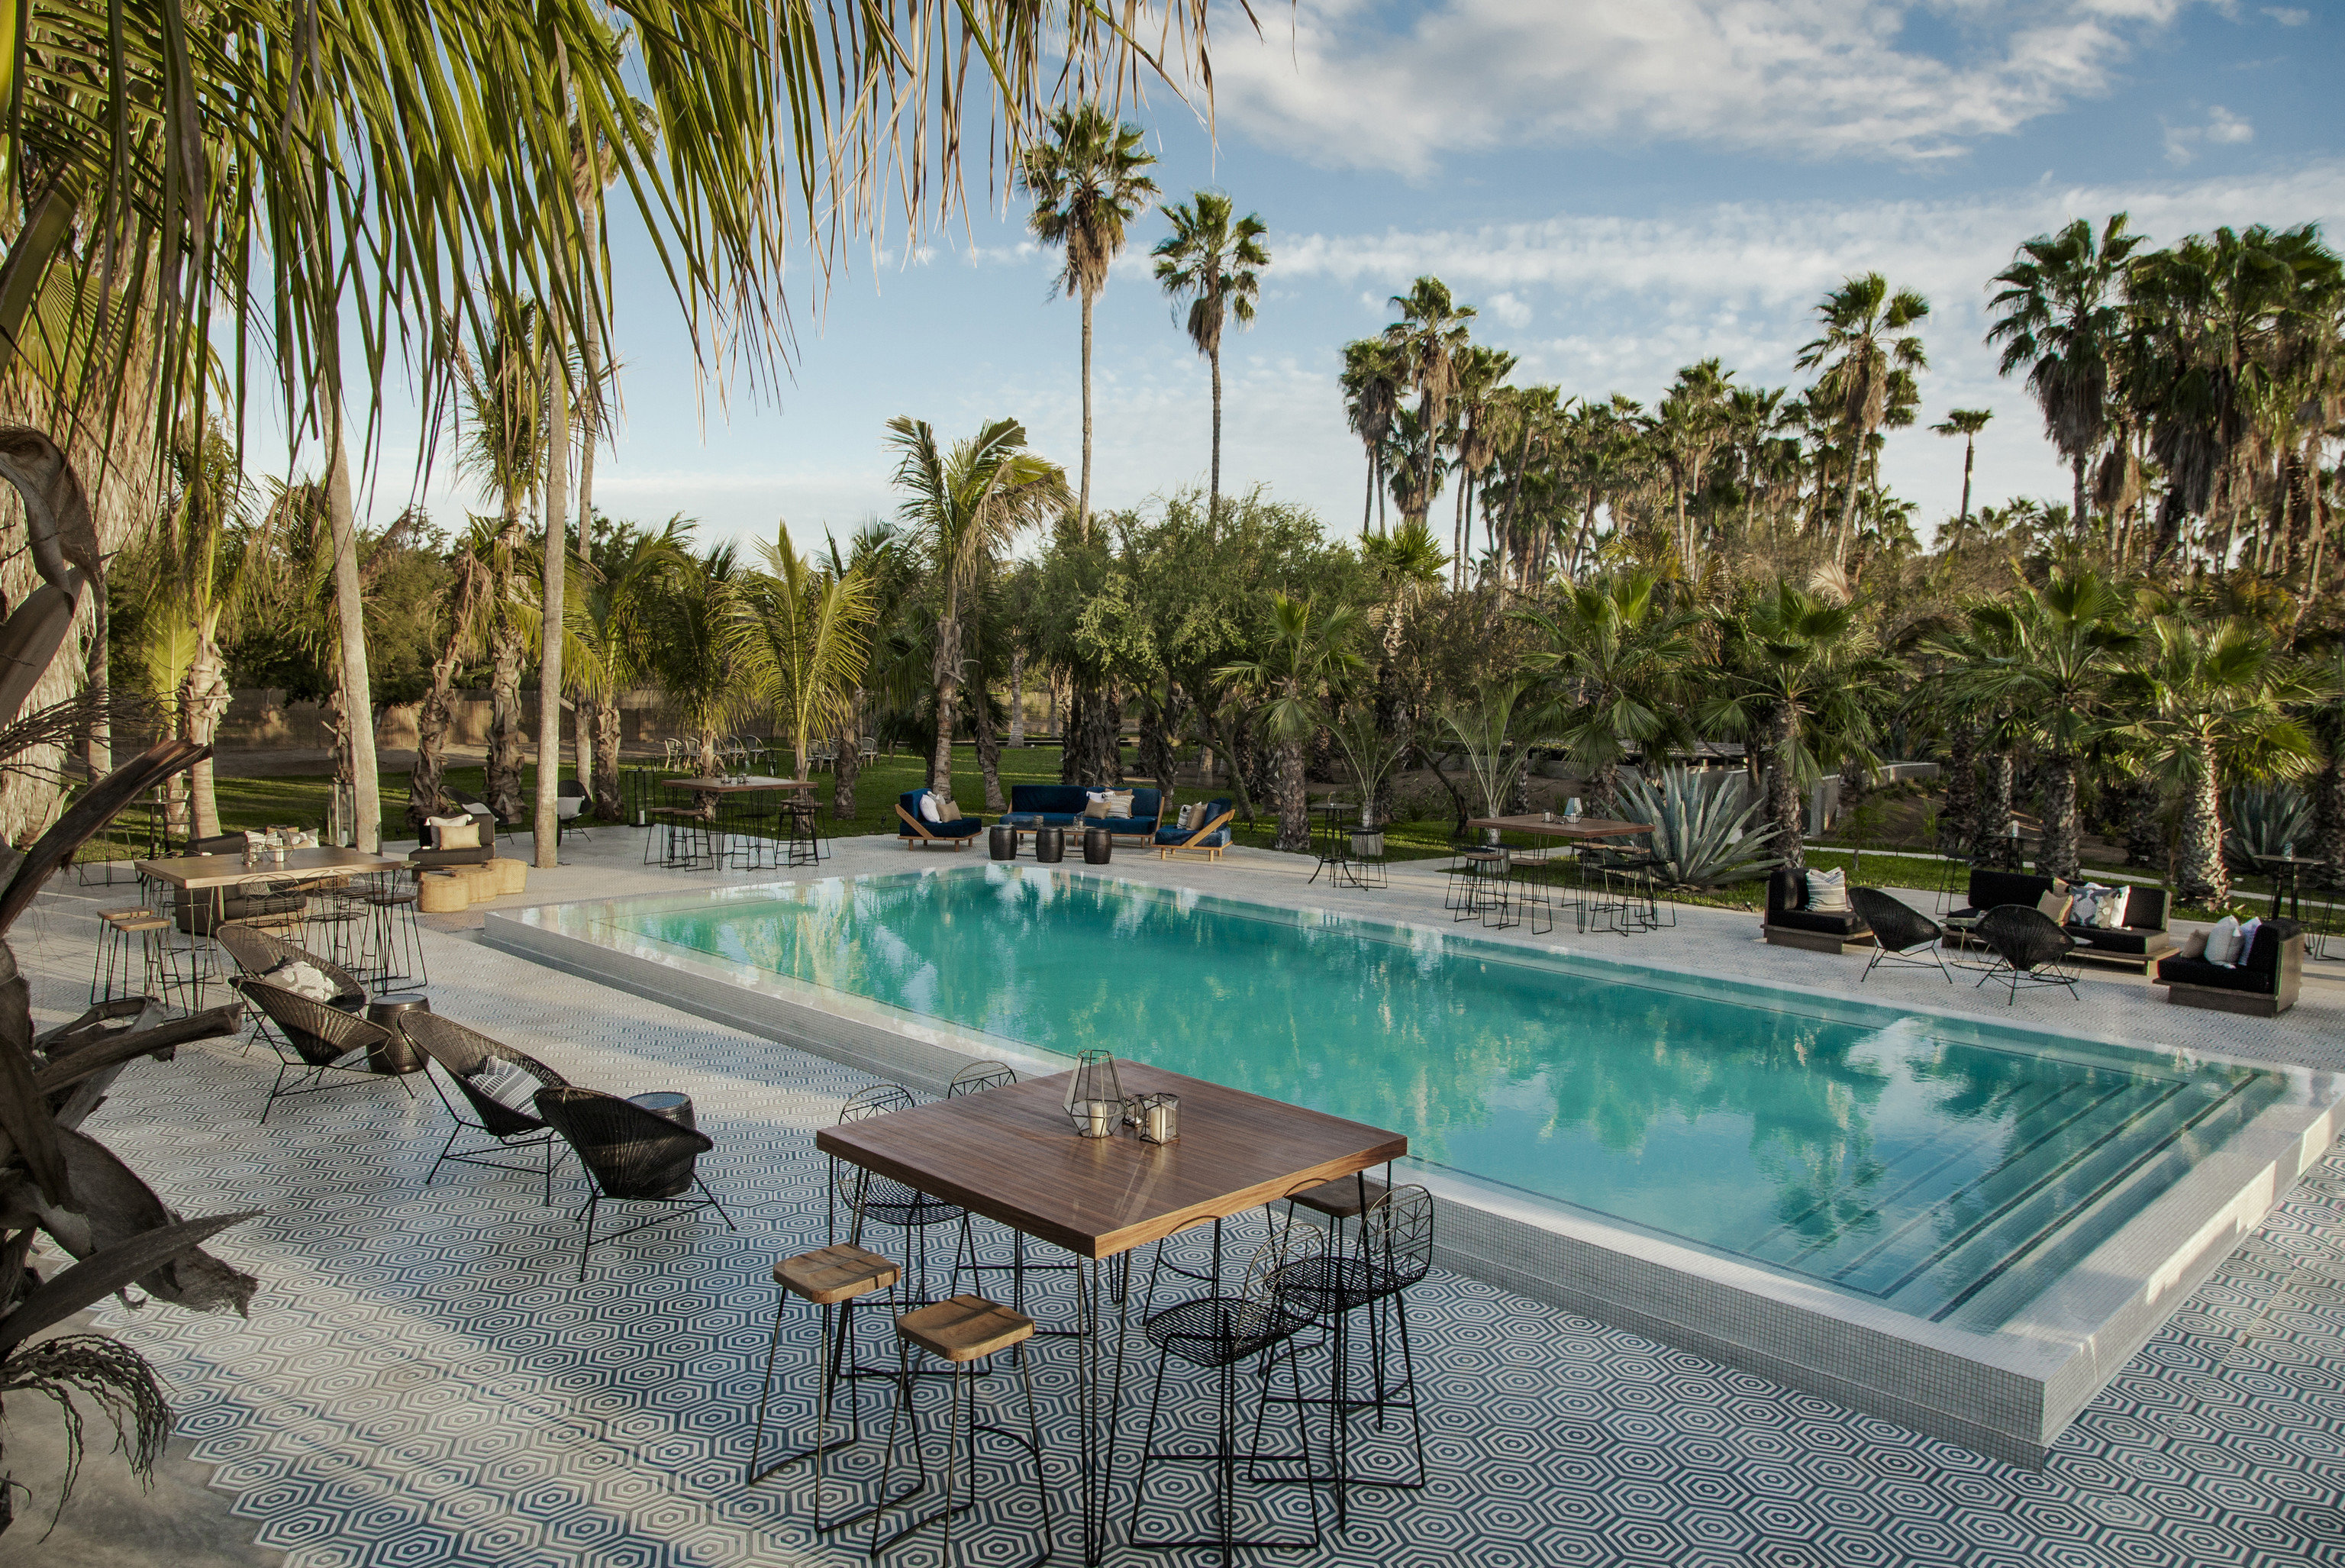 Trip Ideas tree outdoor leisure swimming pool property chair Resort estate vacation Villa Pool real estate palm condominium palace plant area furniture sandy several